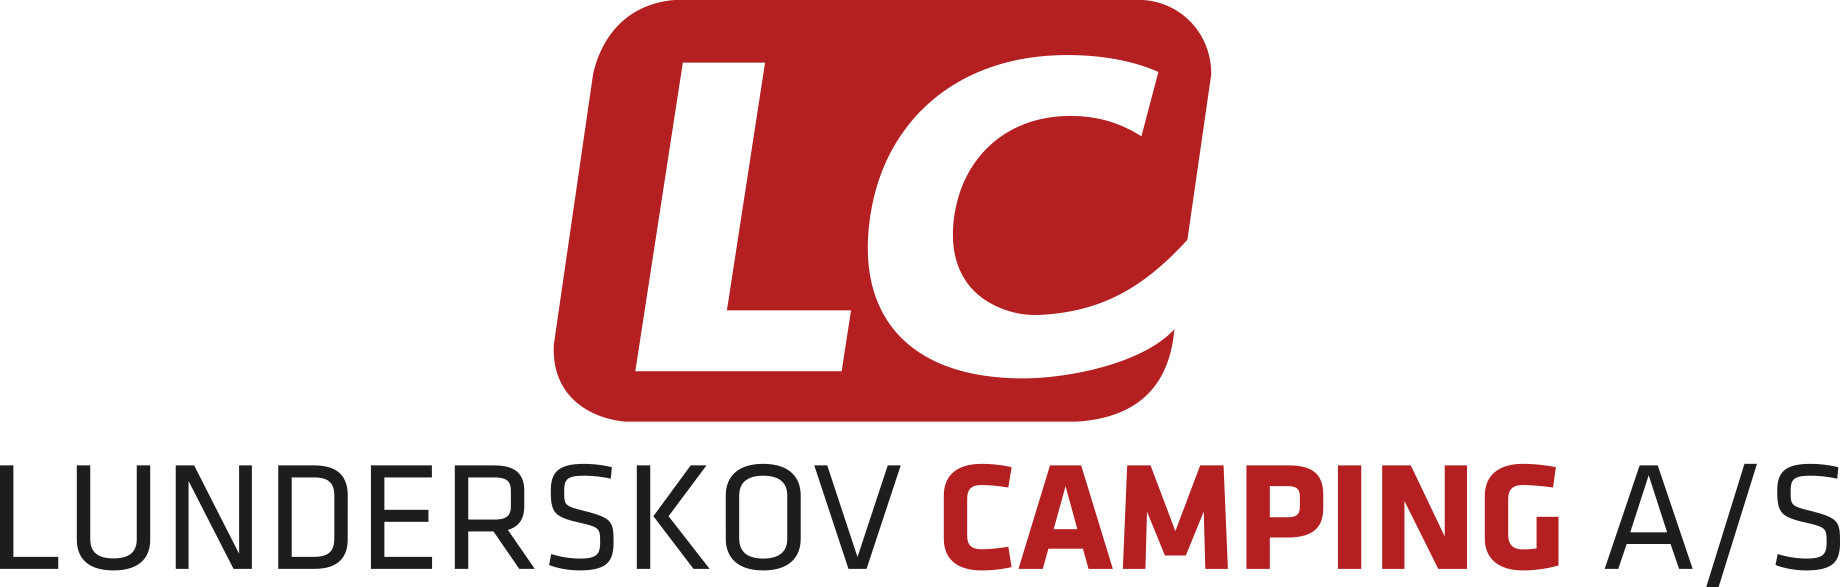 Lunderskov Camping A/S